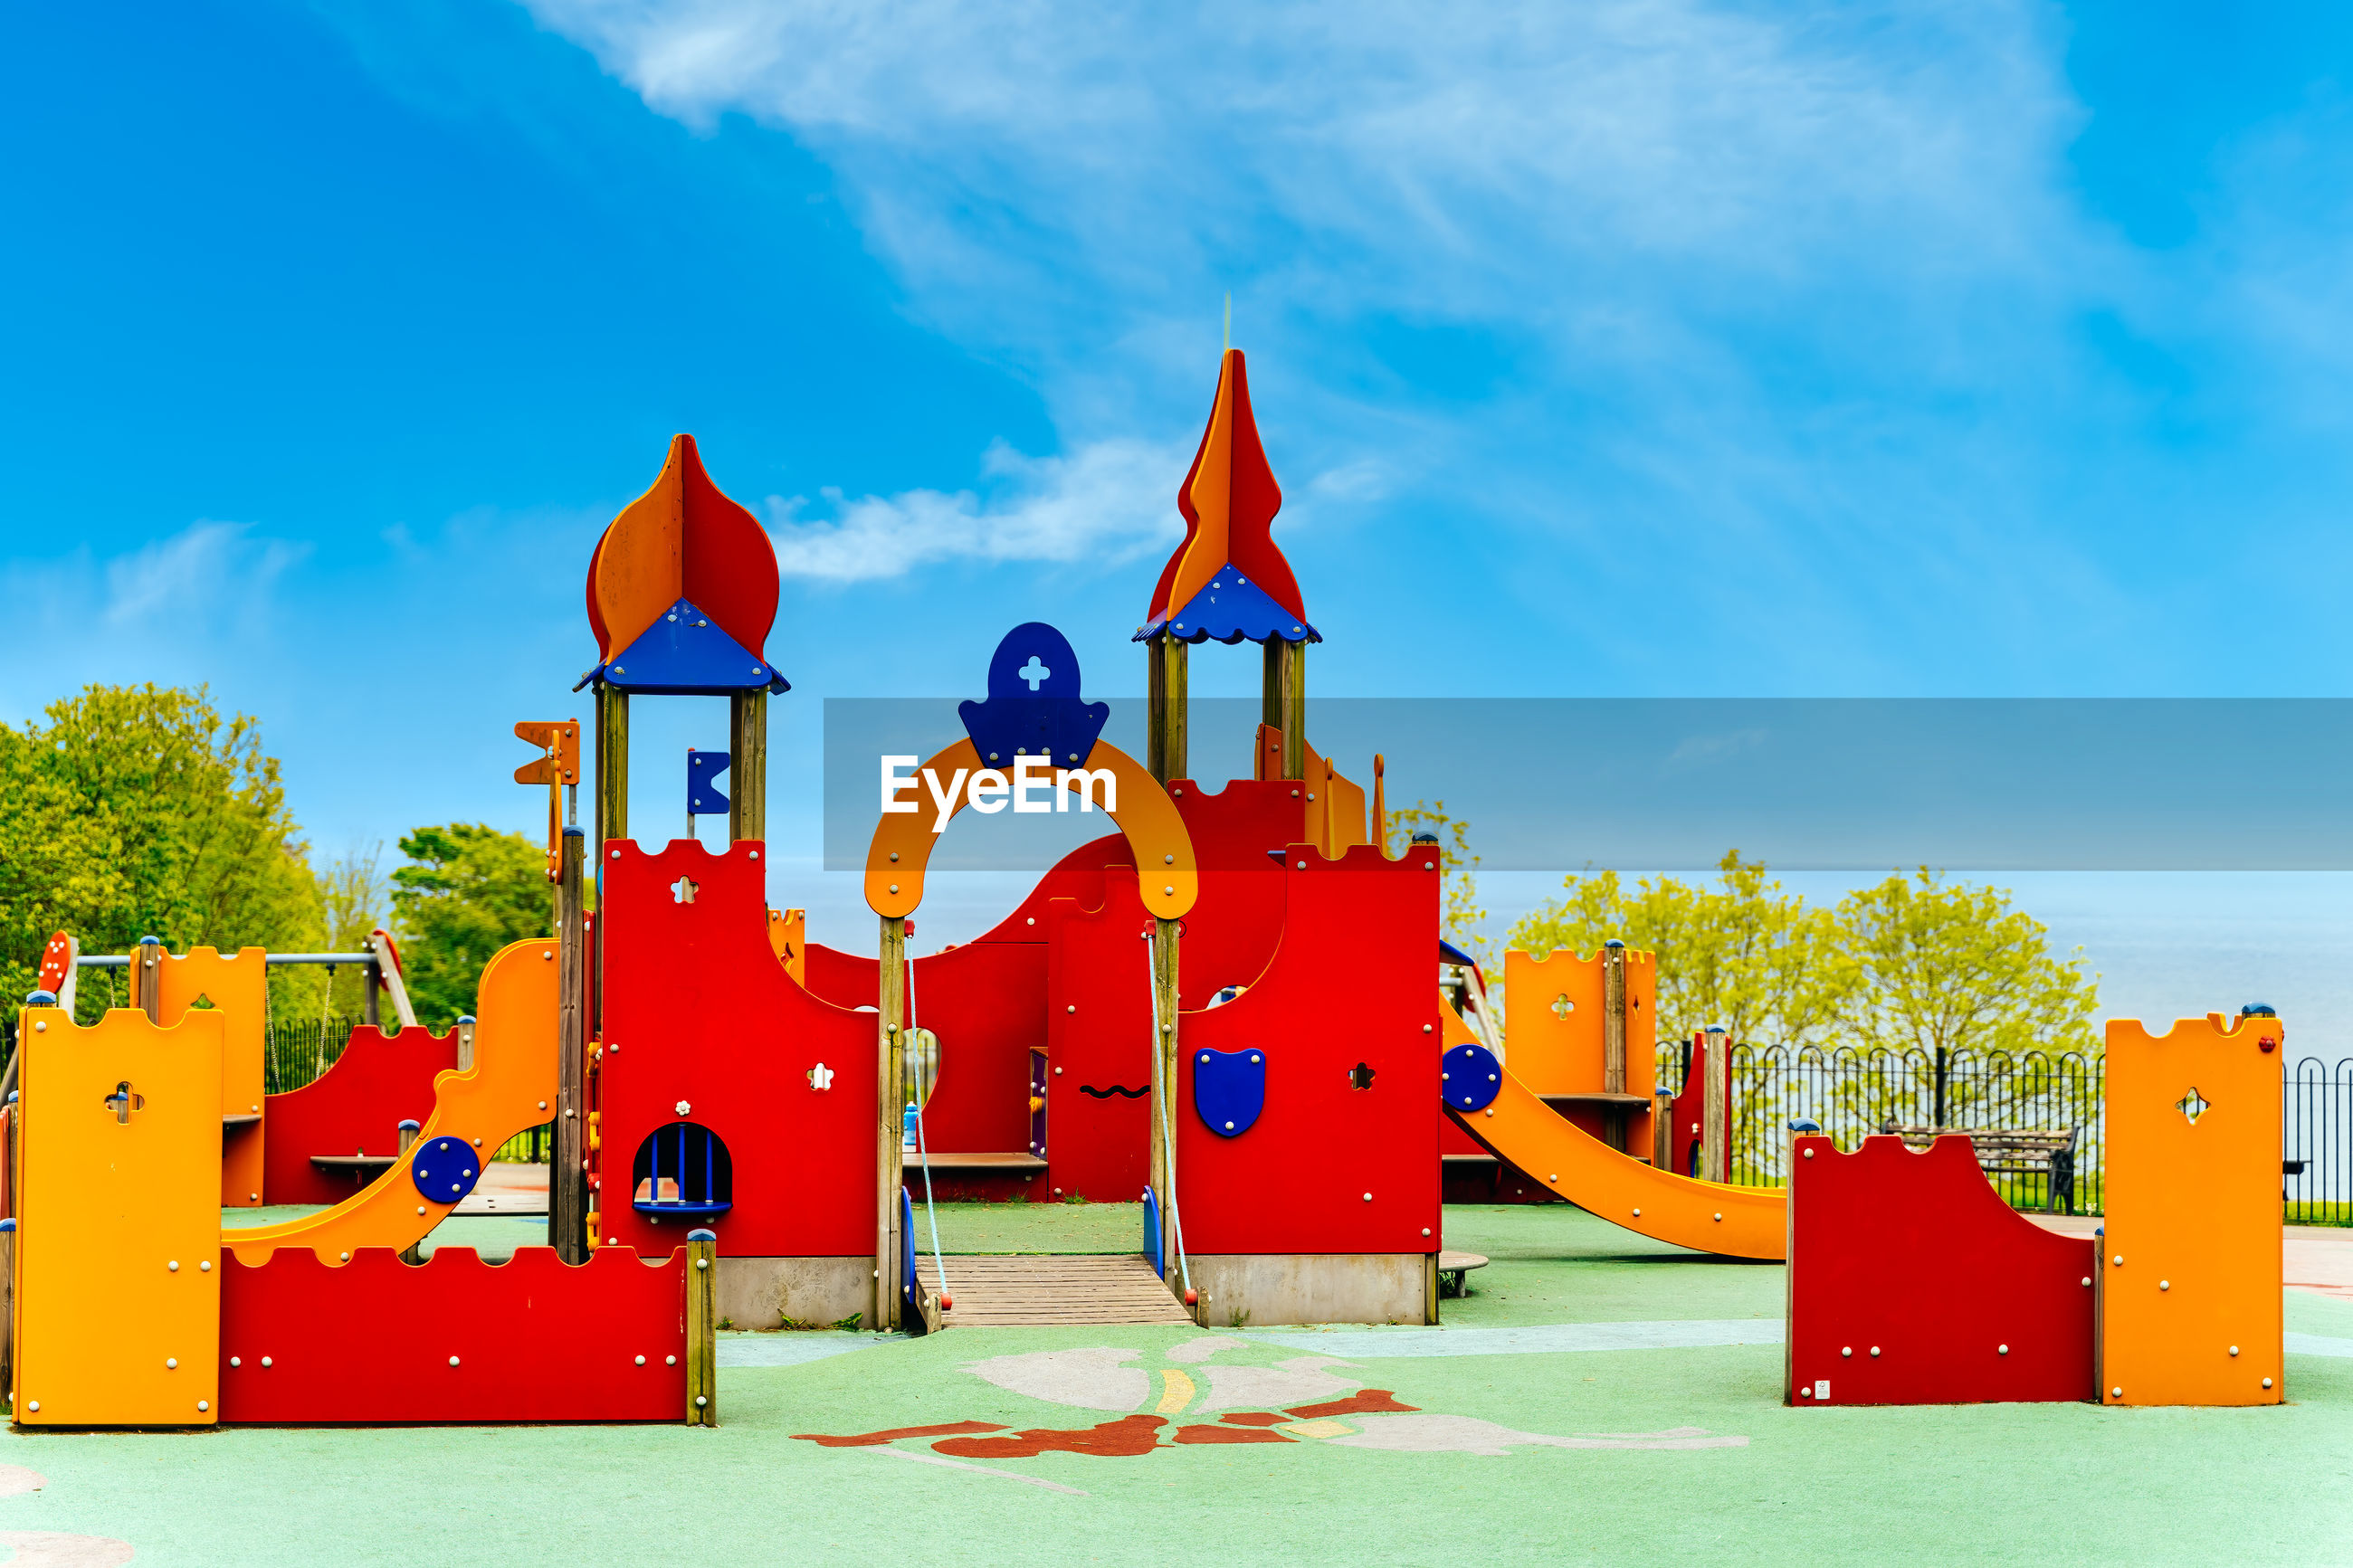 View of playground against sky